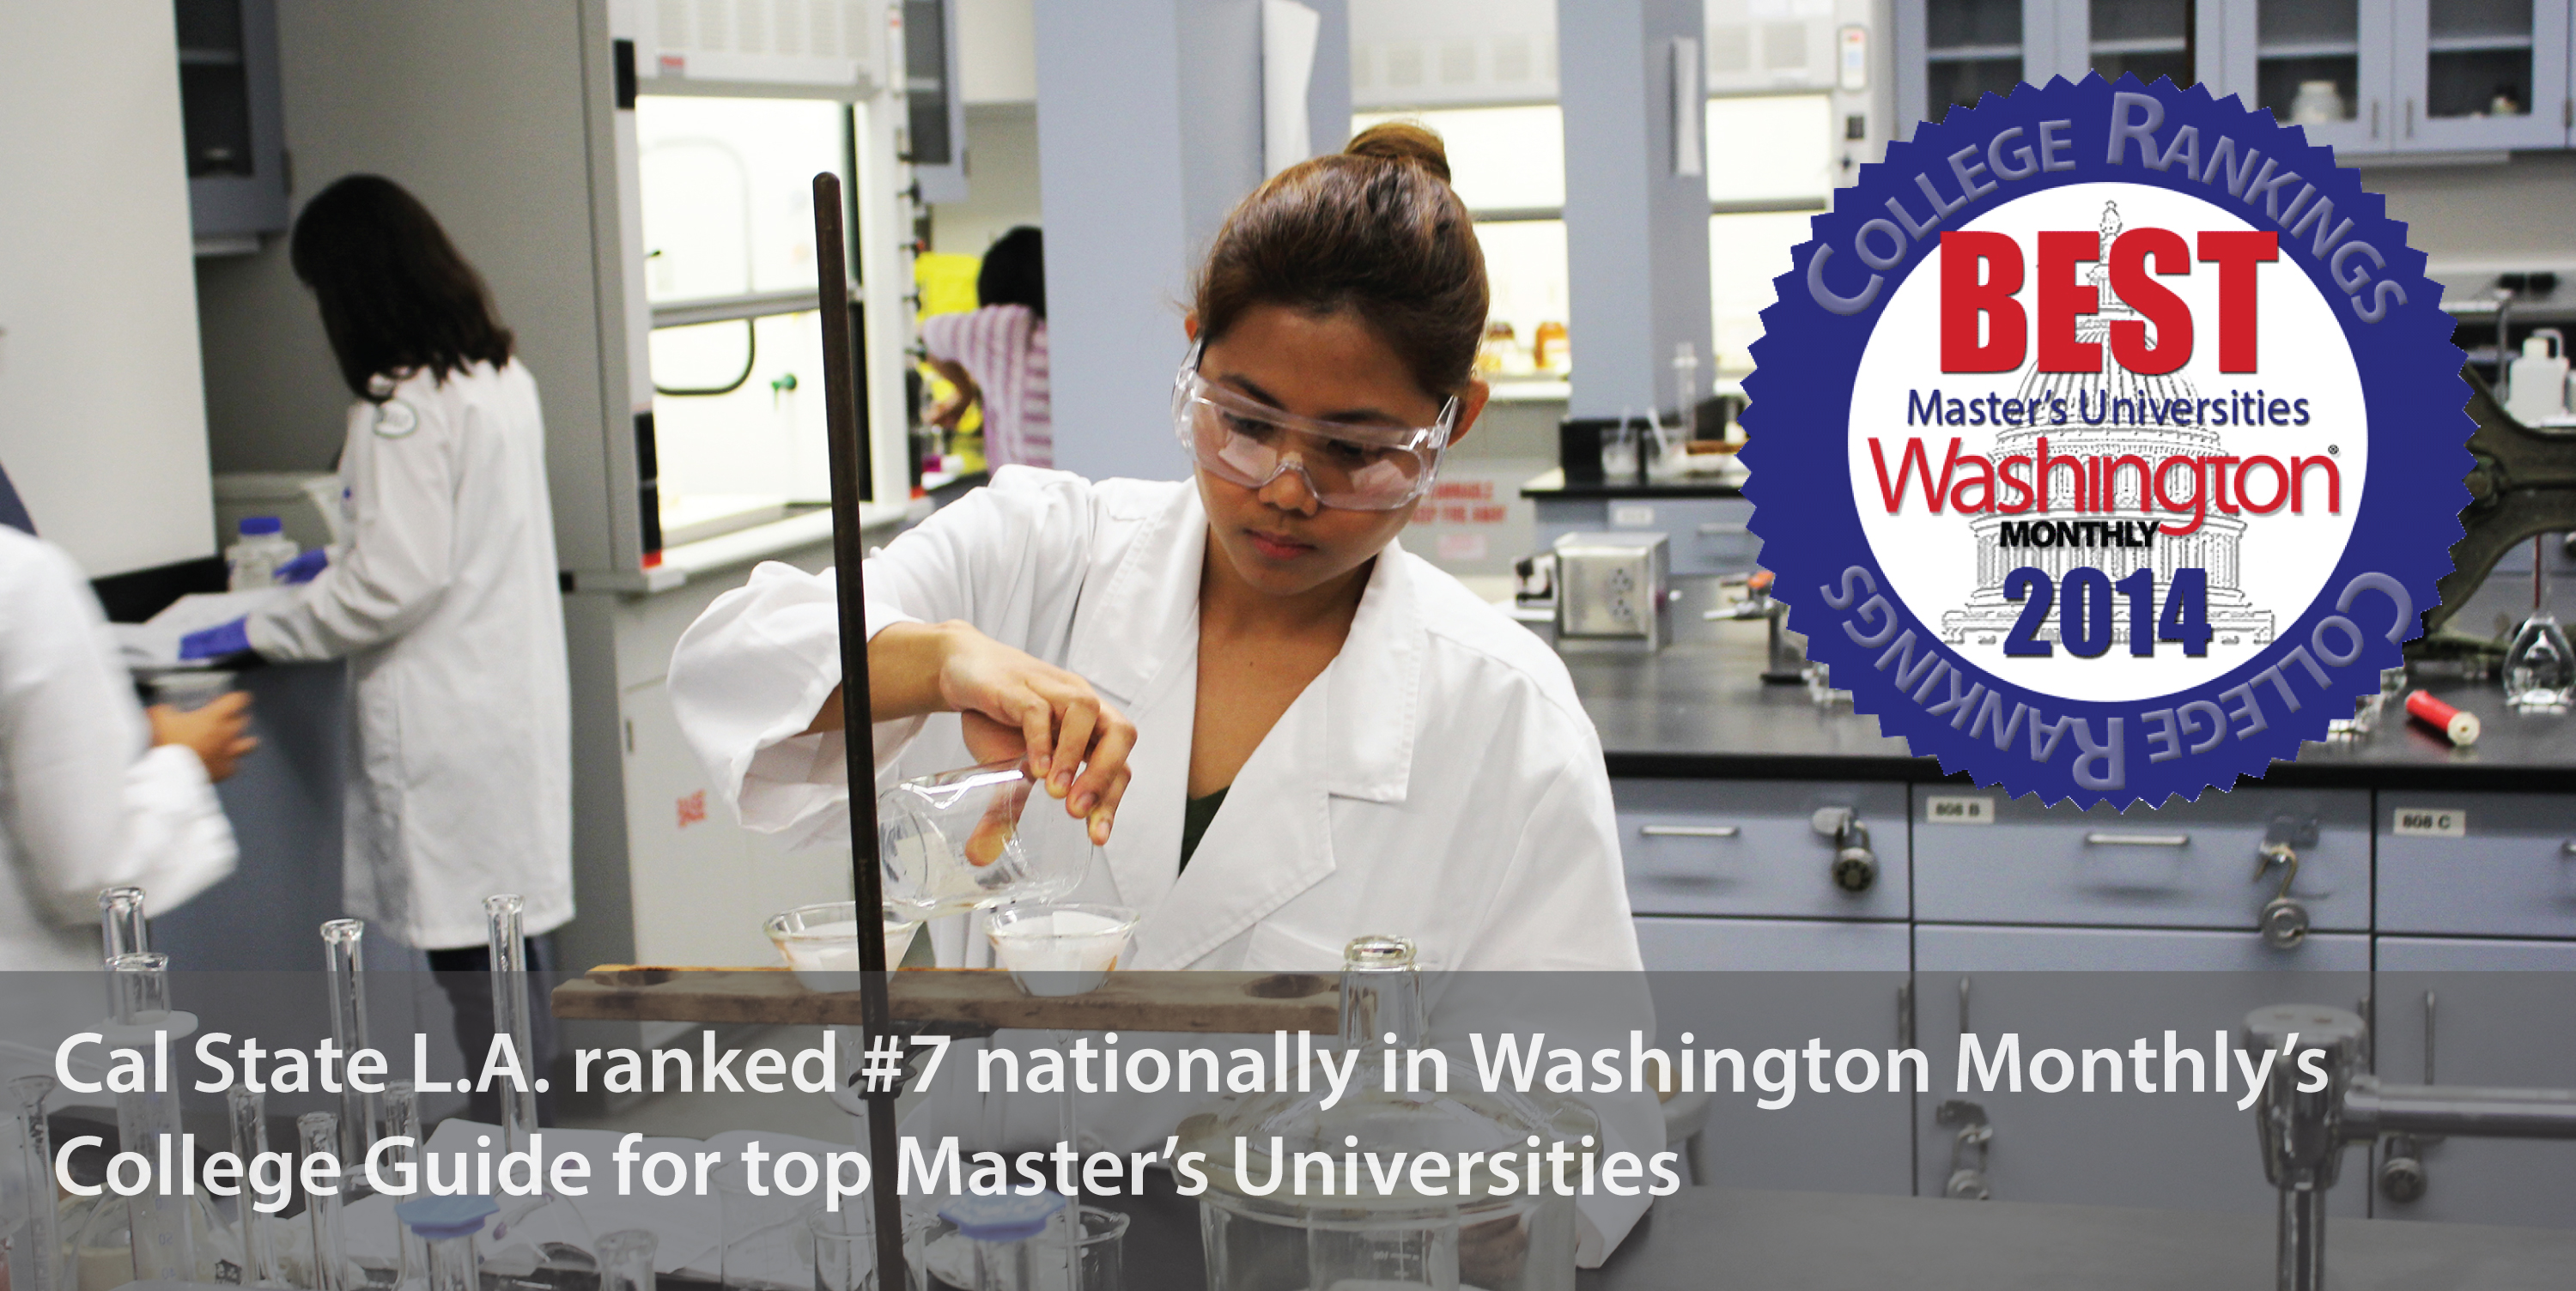 Cal state L.A. ranked number 7 in Washington Monthly